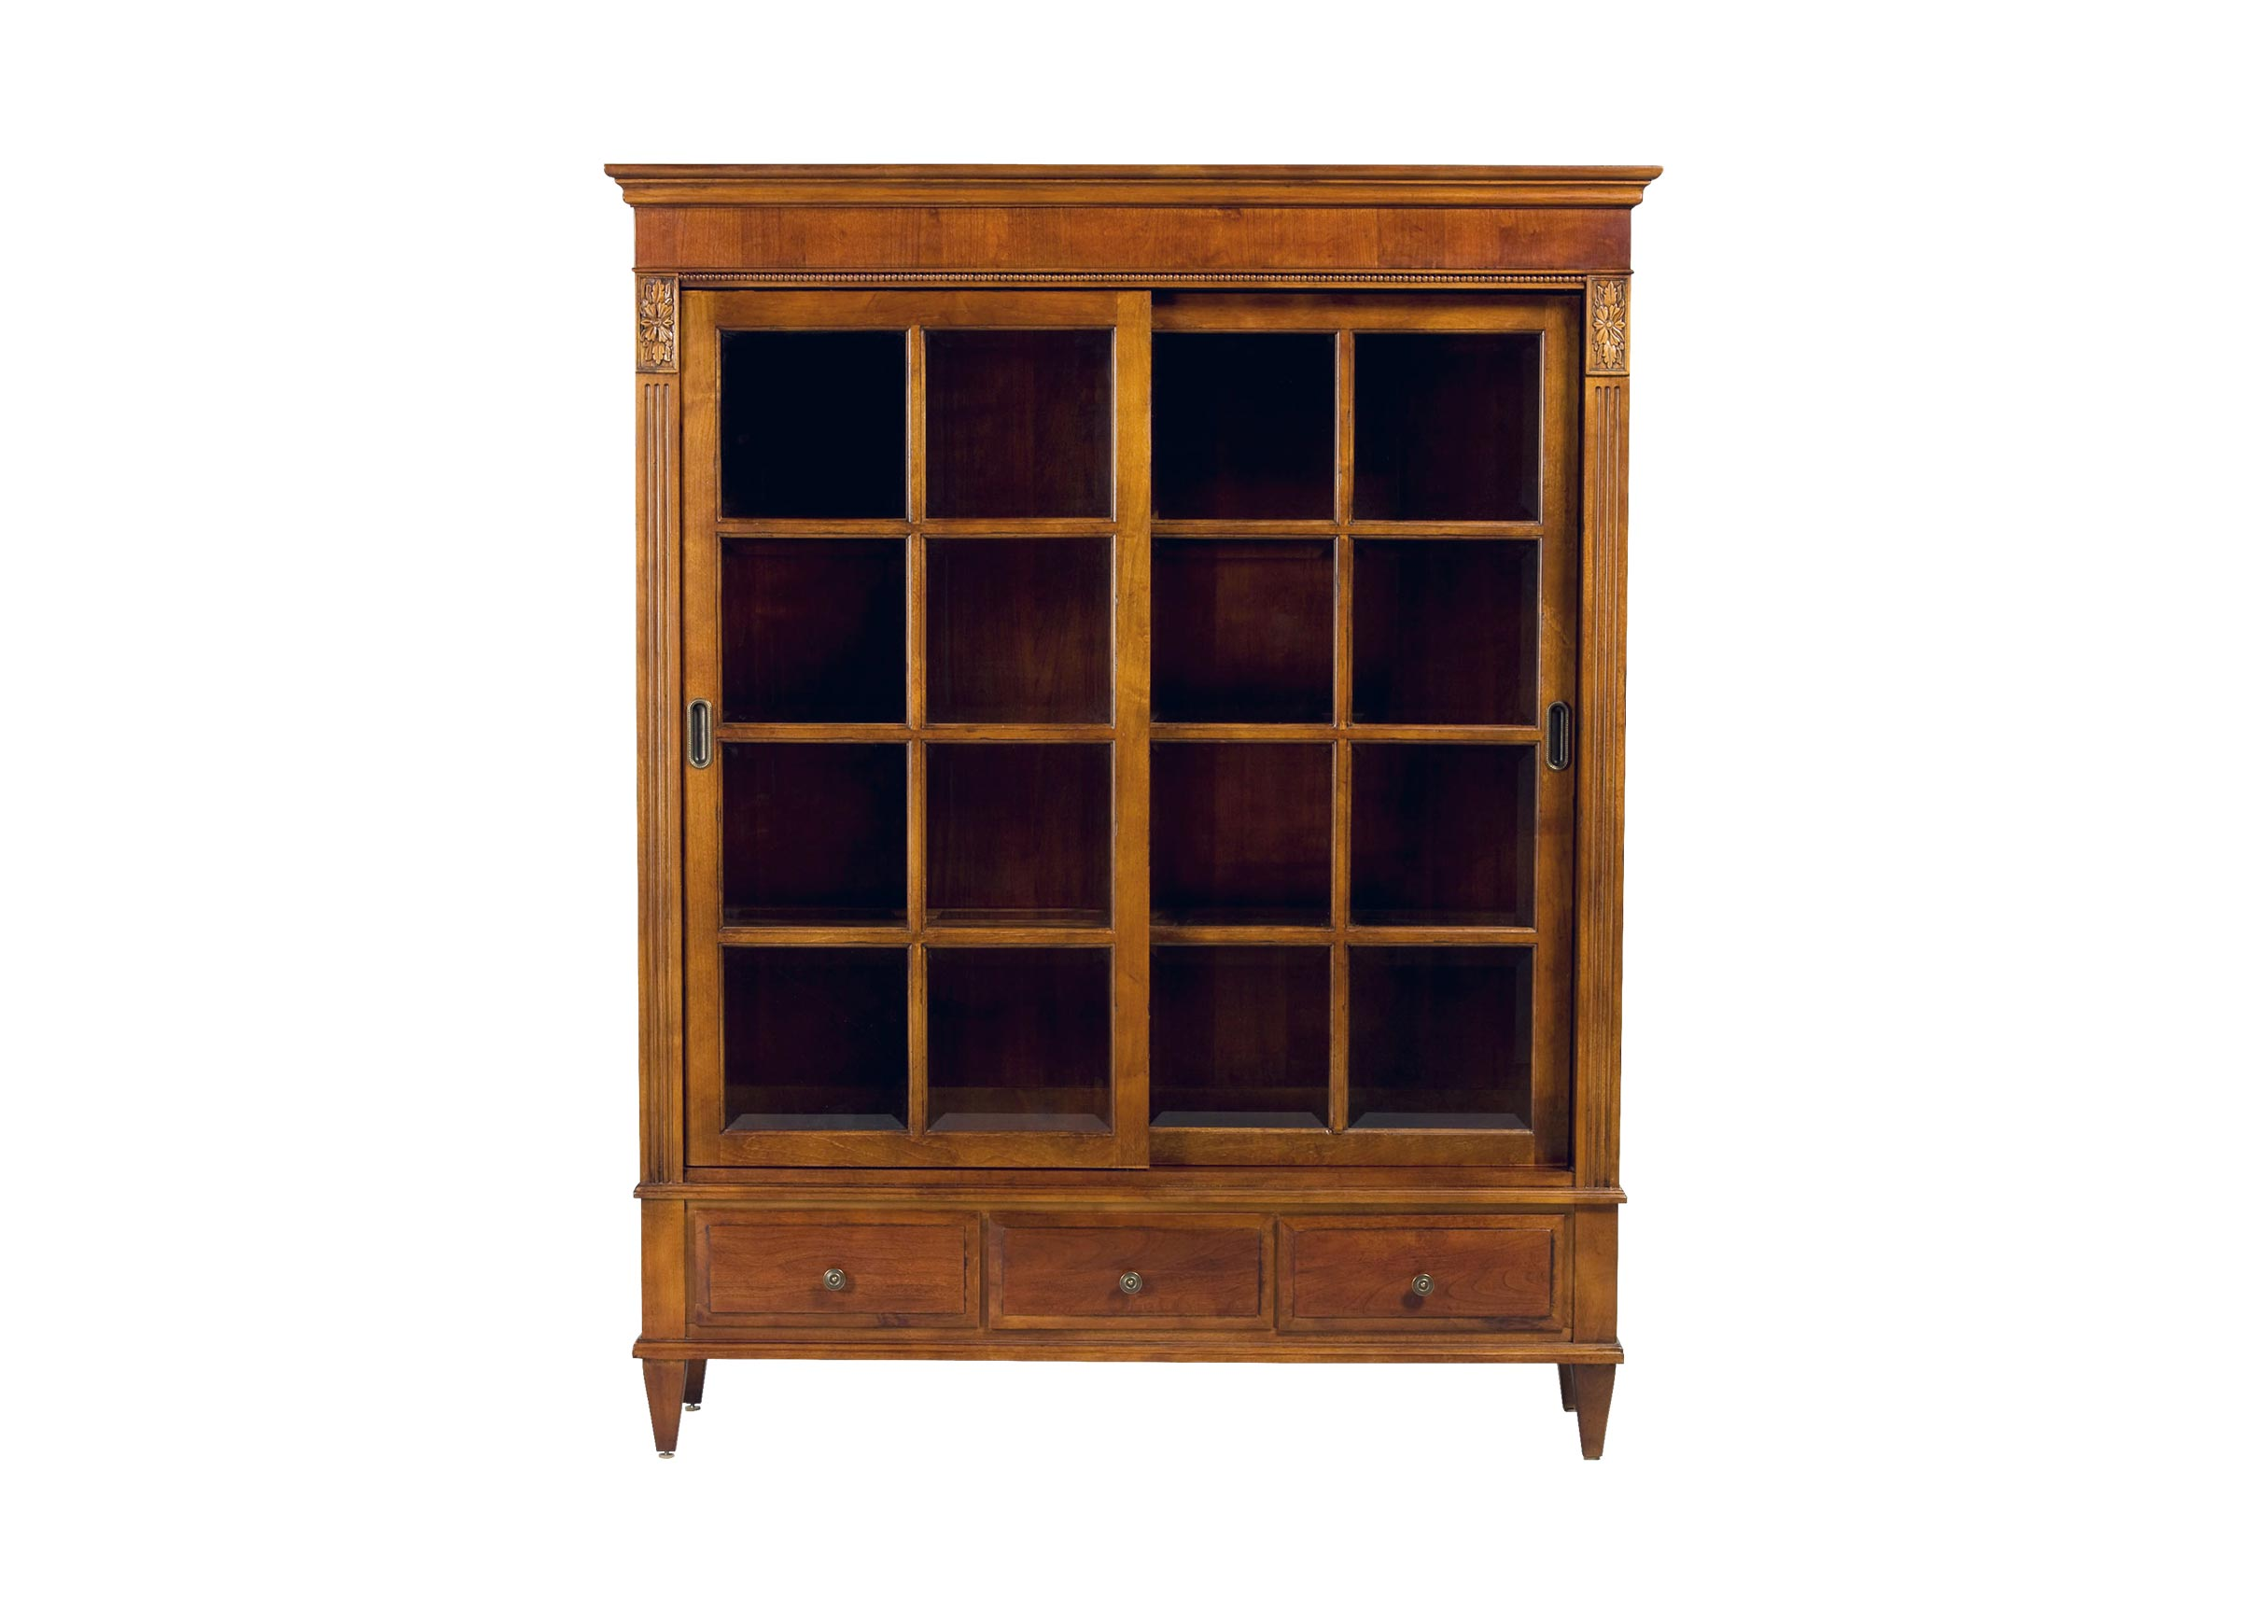 Ordinaire Images Ashton Curio Cabinet !